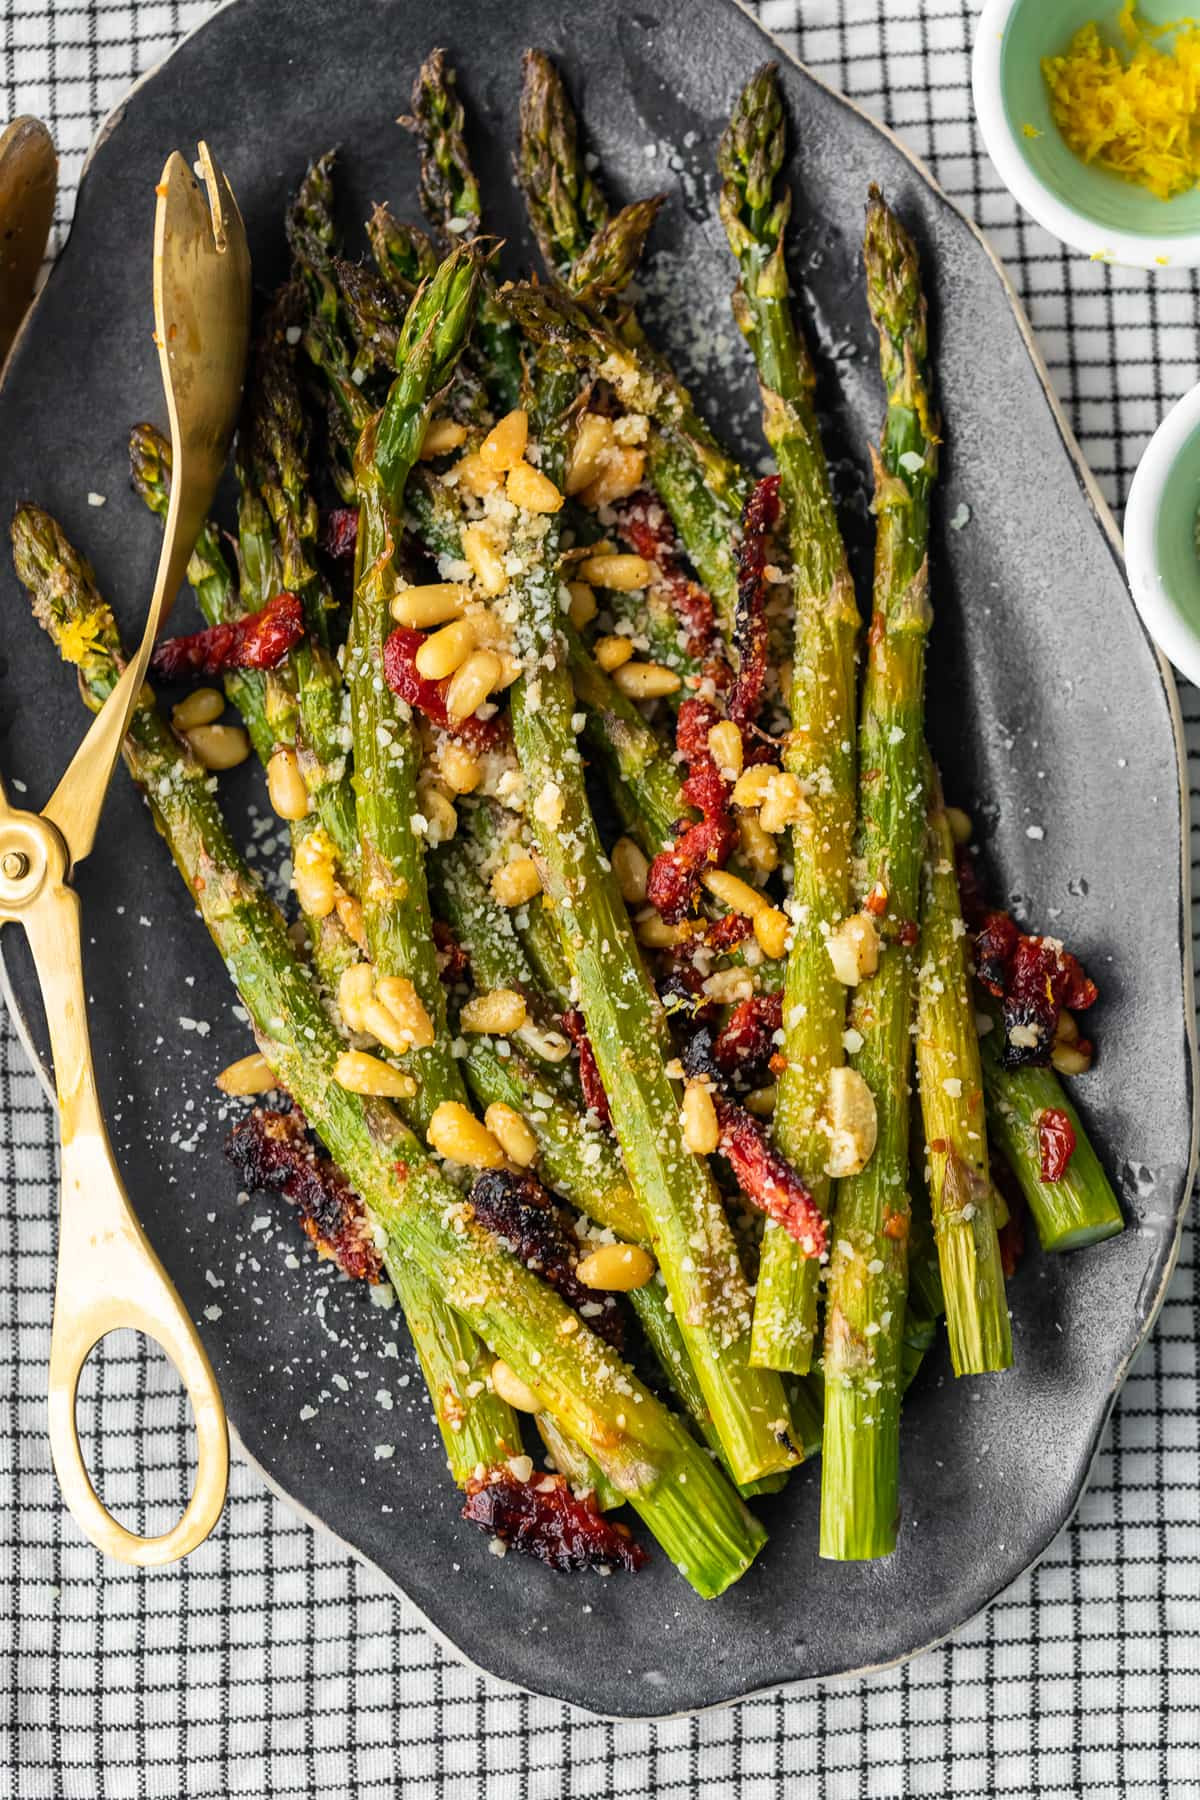 Asparagus Side Dishes  Oven Roasted Asparagus with Sun Dried Tomatoes VIDEO